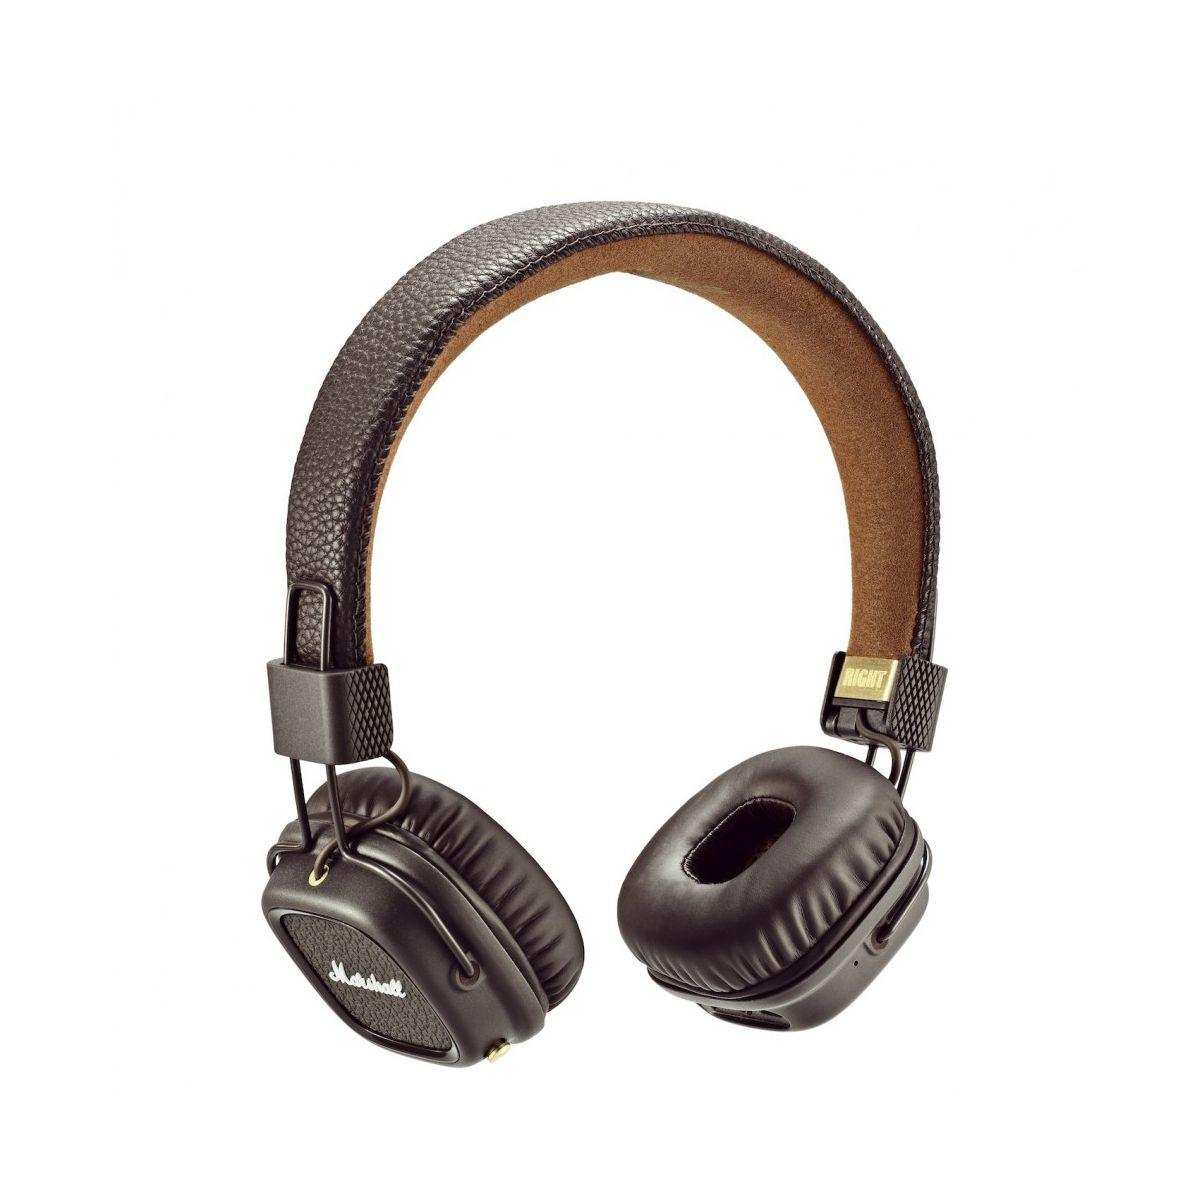 Casque audio bluetooth marshall major ii bt marron - livraison offerte : code liv (photo)